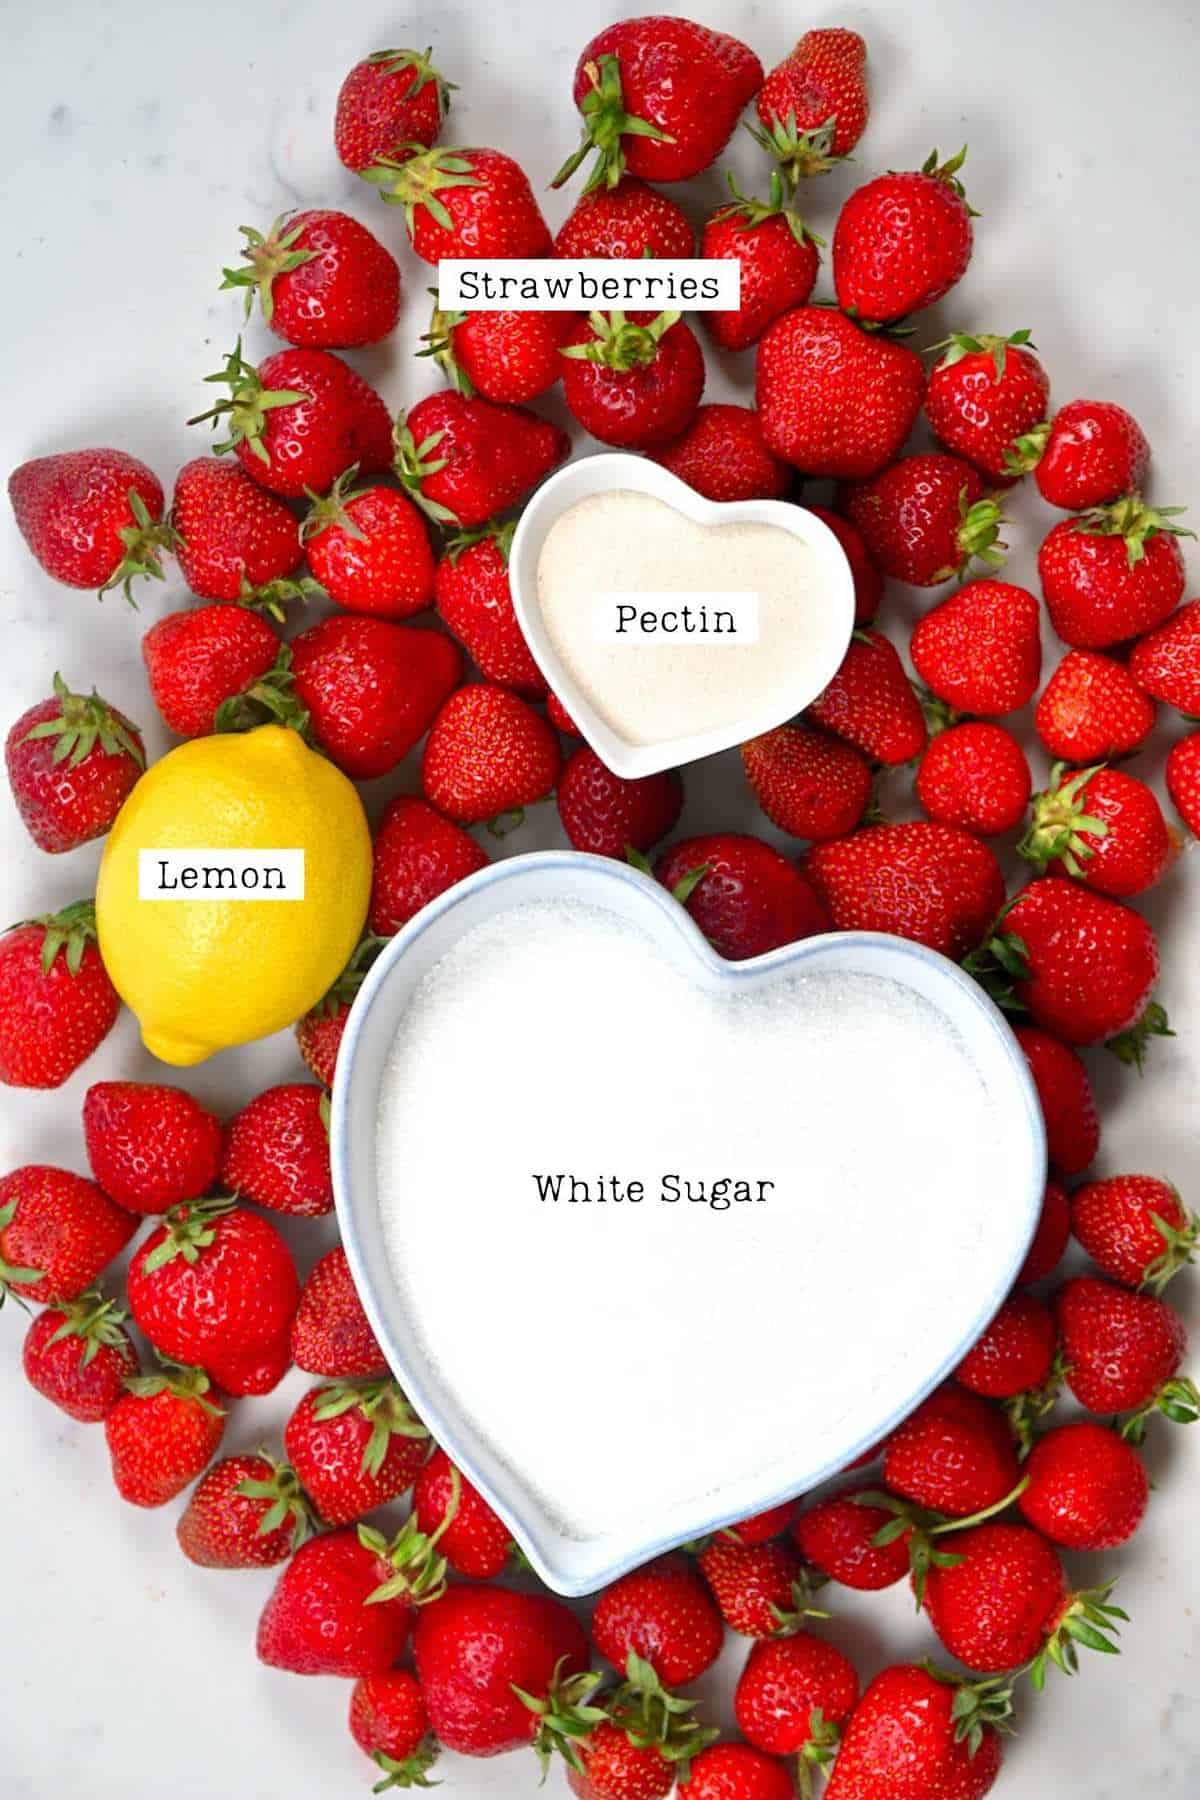 Ingredients for making Strawberry Jam